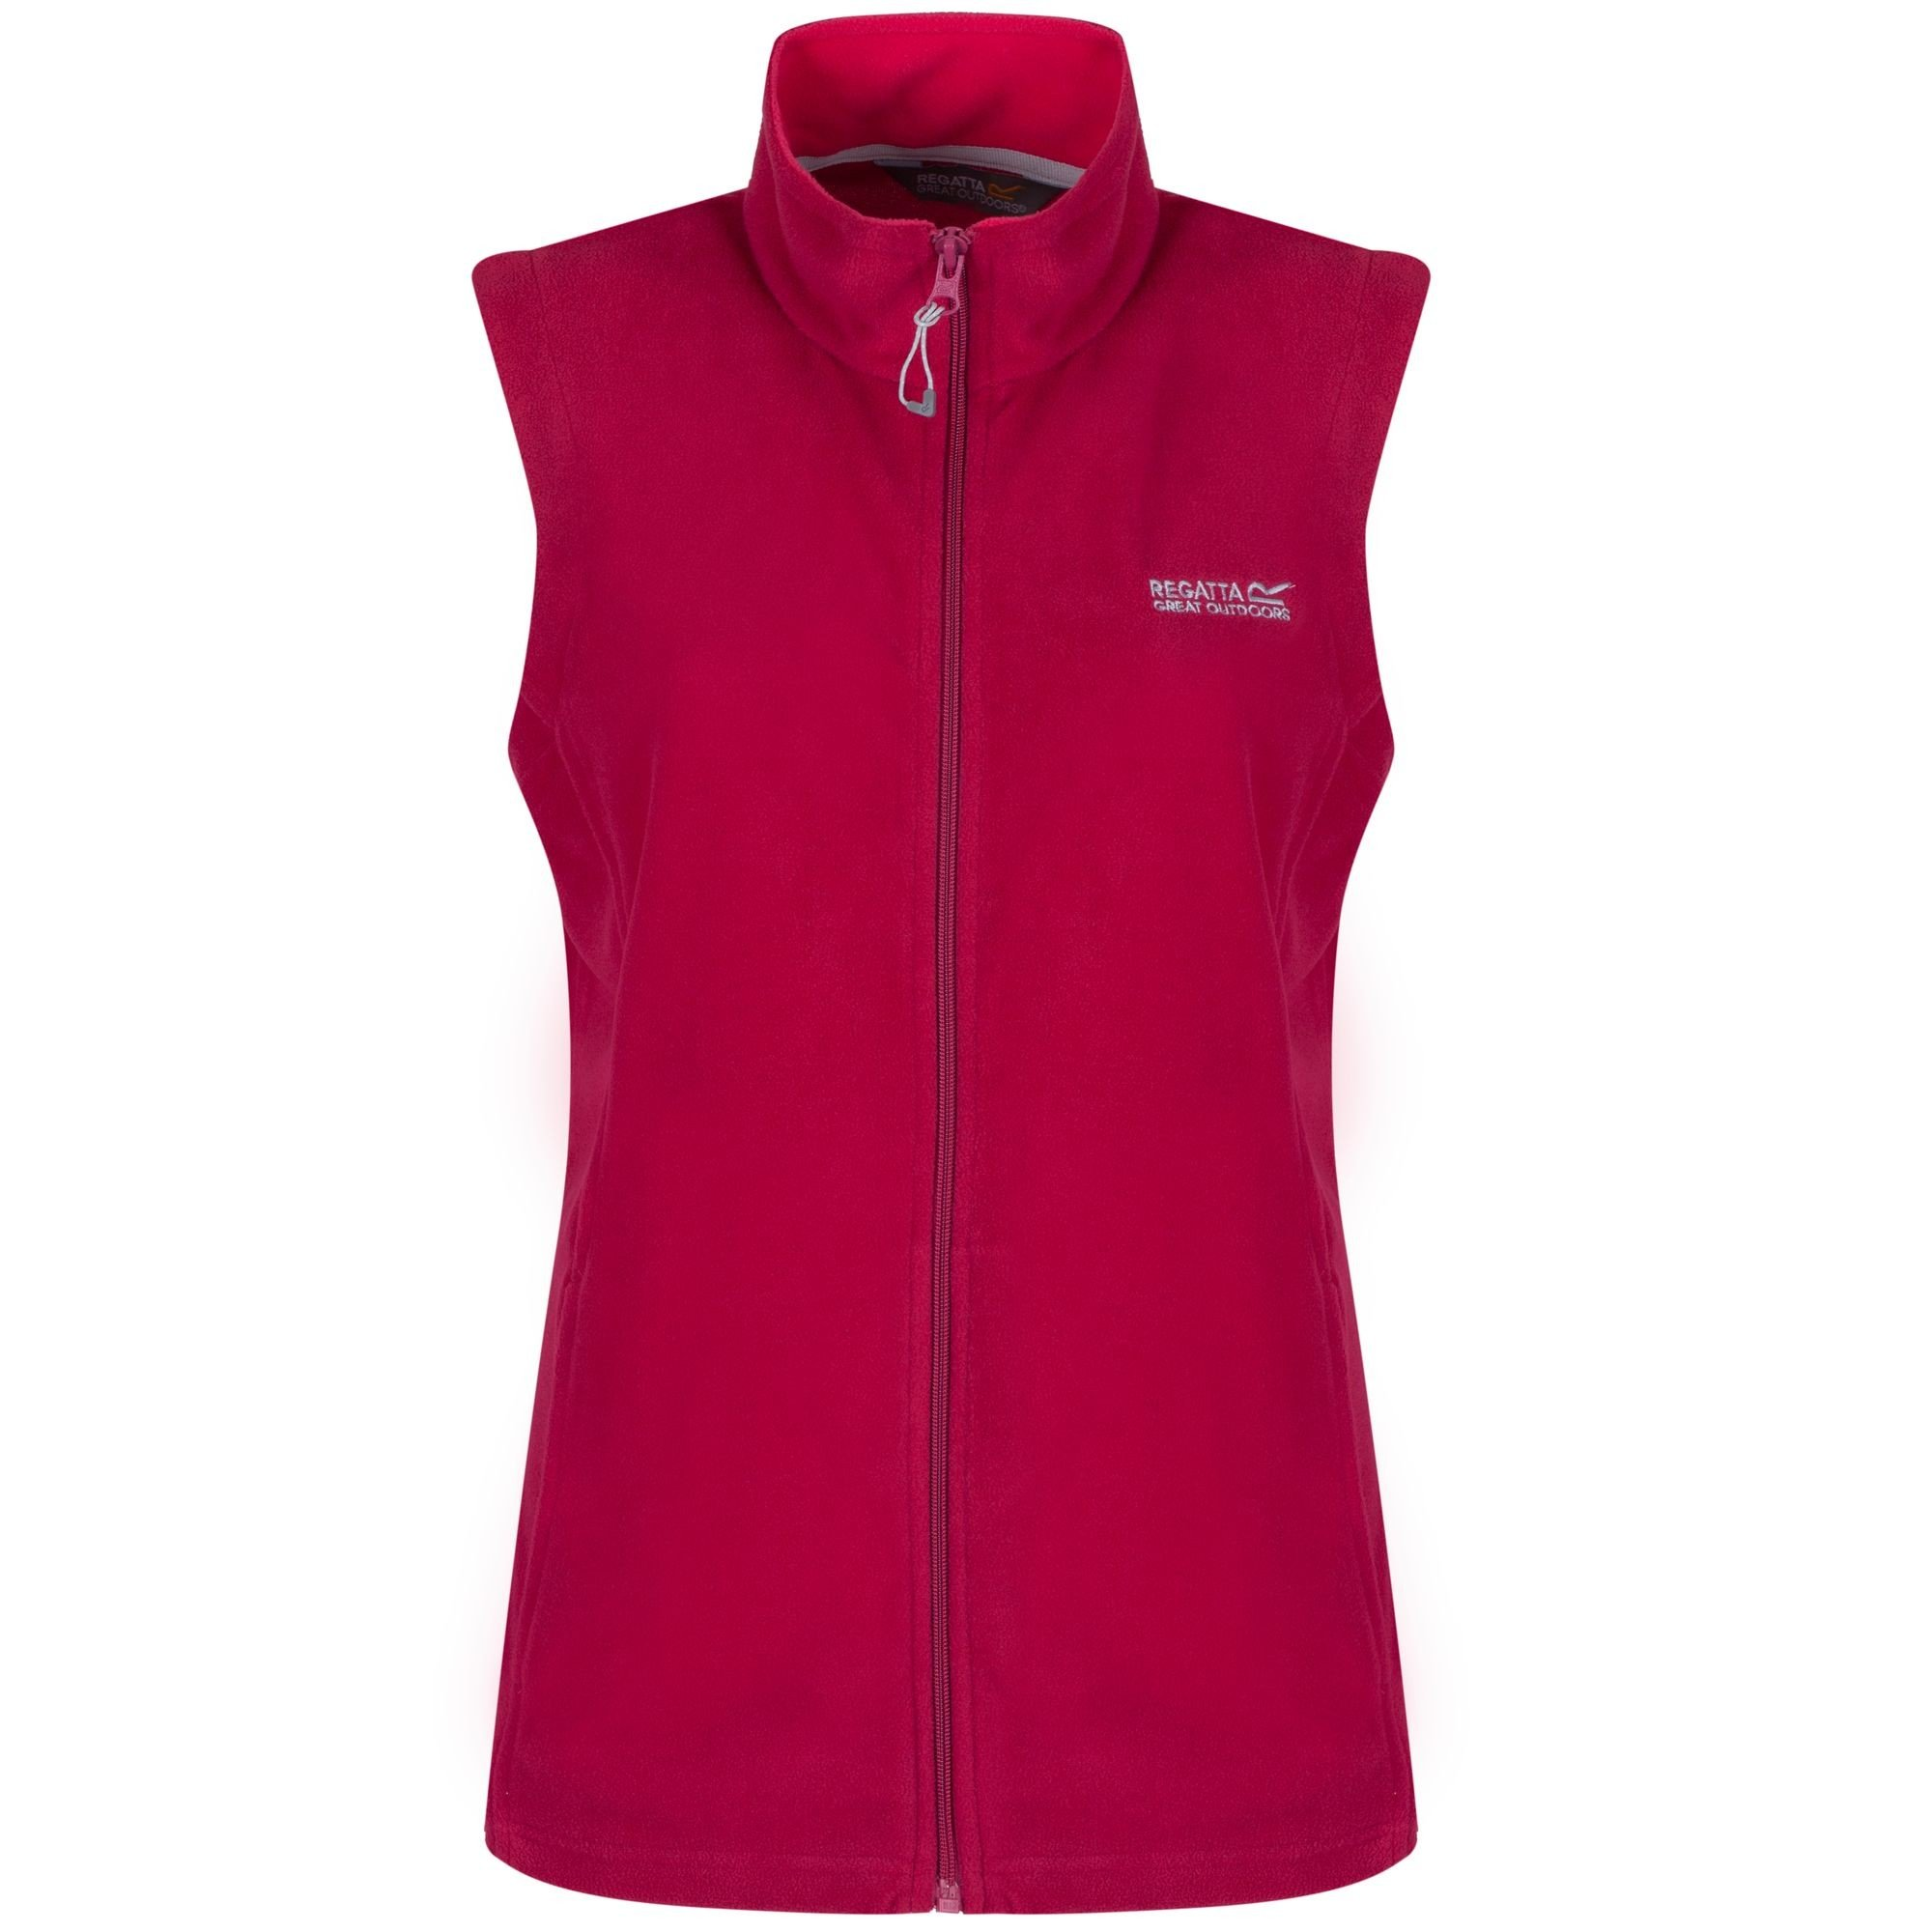 Regatta Great Outdoors Womens/Ladies Outdoor Classics Sweetness II Bodywarmer (18 US) (Dark Cerise/Duchess)